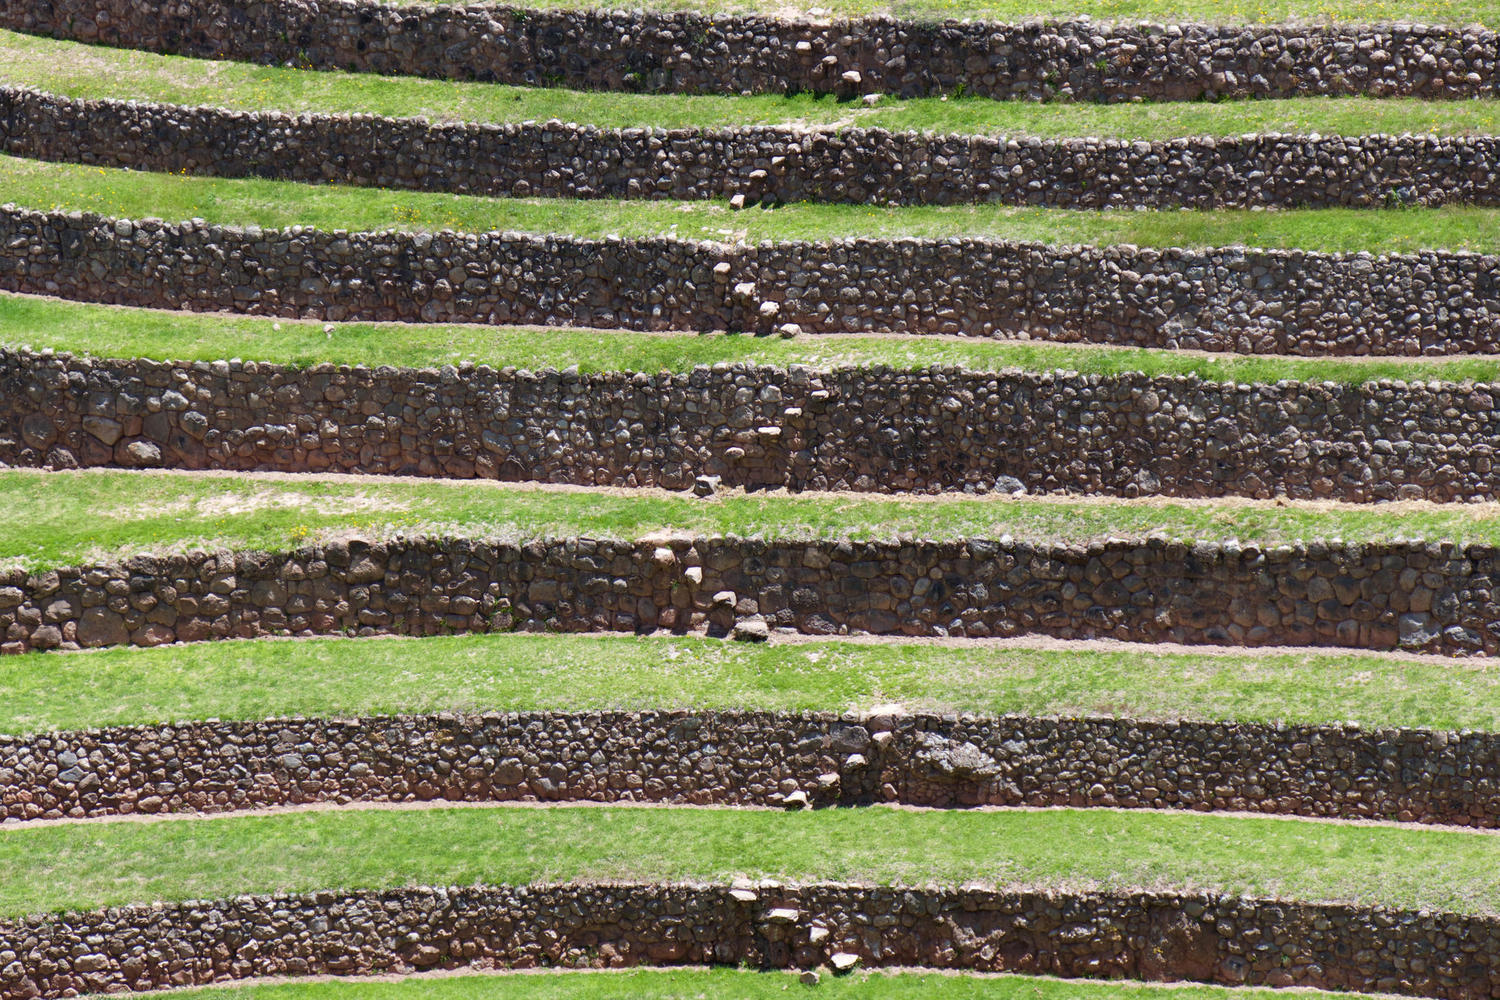 Terraces at the Inca site of Moray